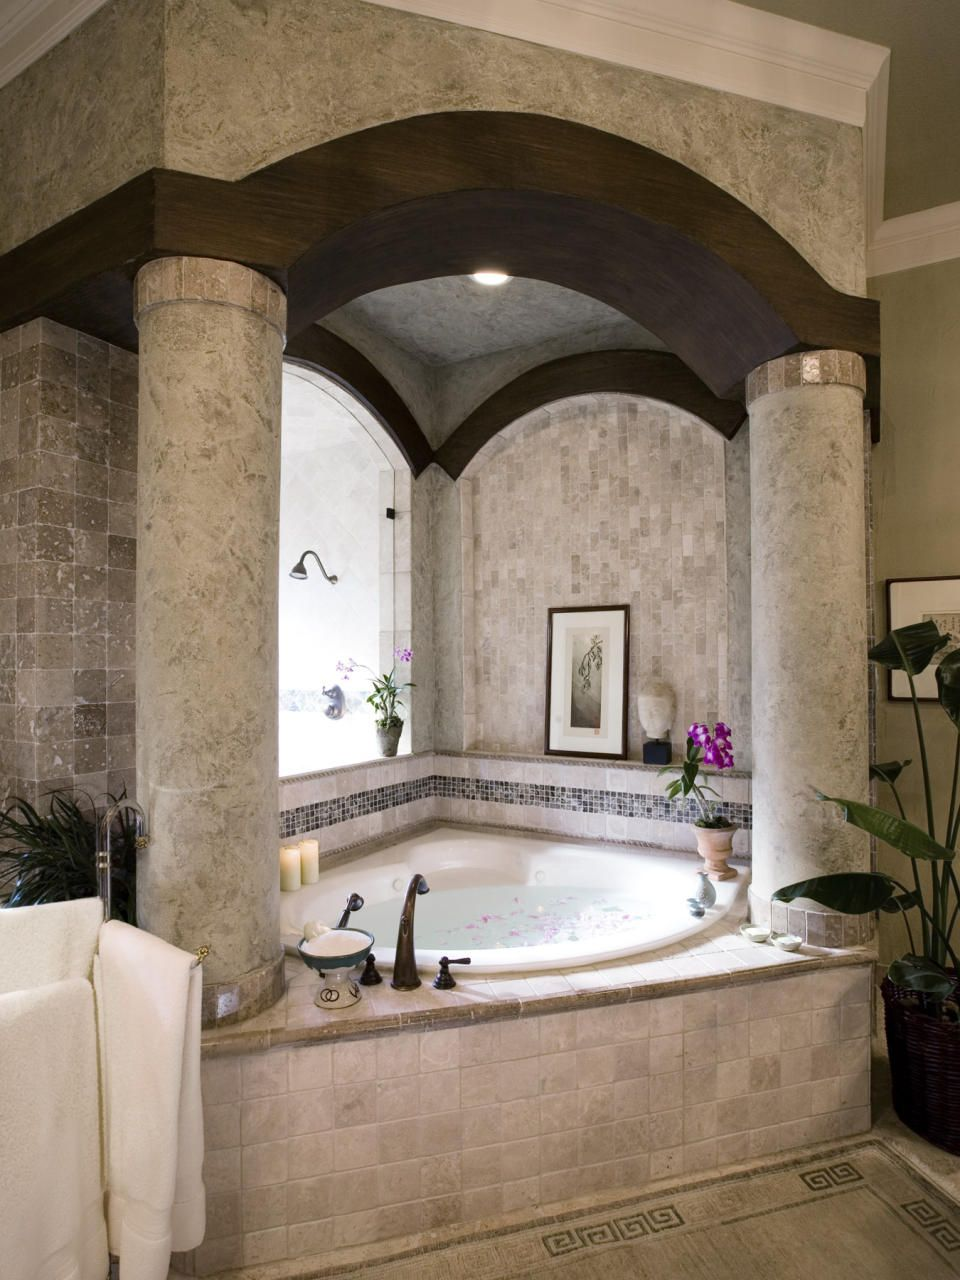 Now There 39 S A Tub And Enclosure Give It Tuscan Mediterranean Elements And Colors And I 39 D Be